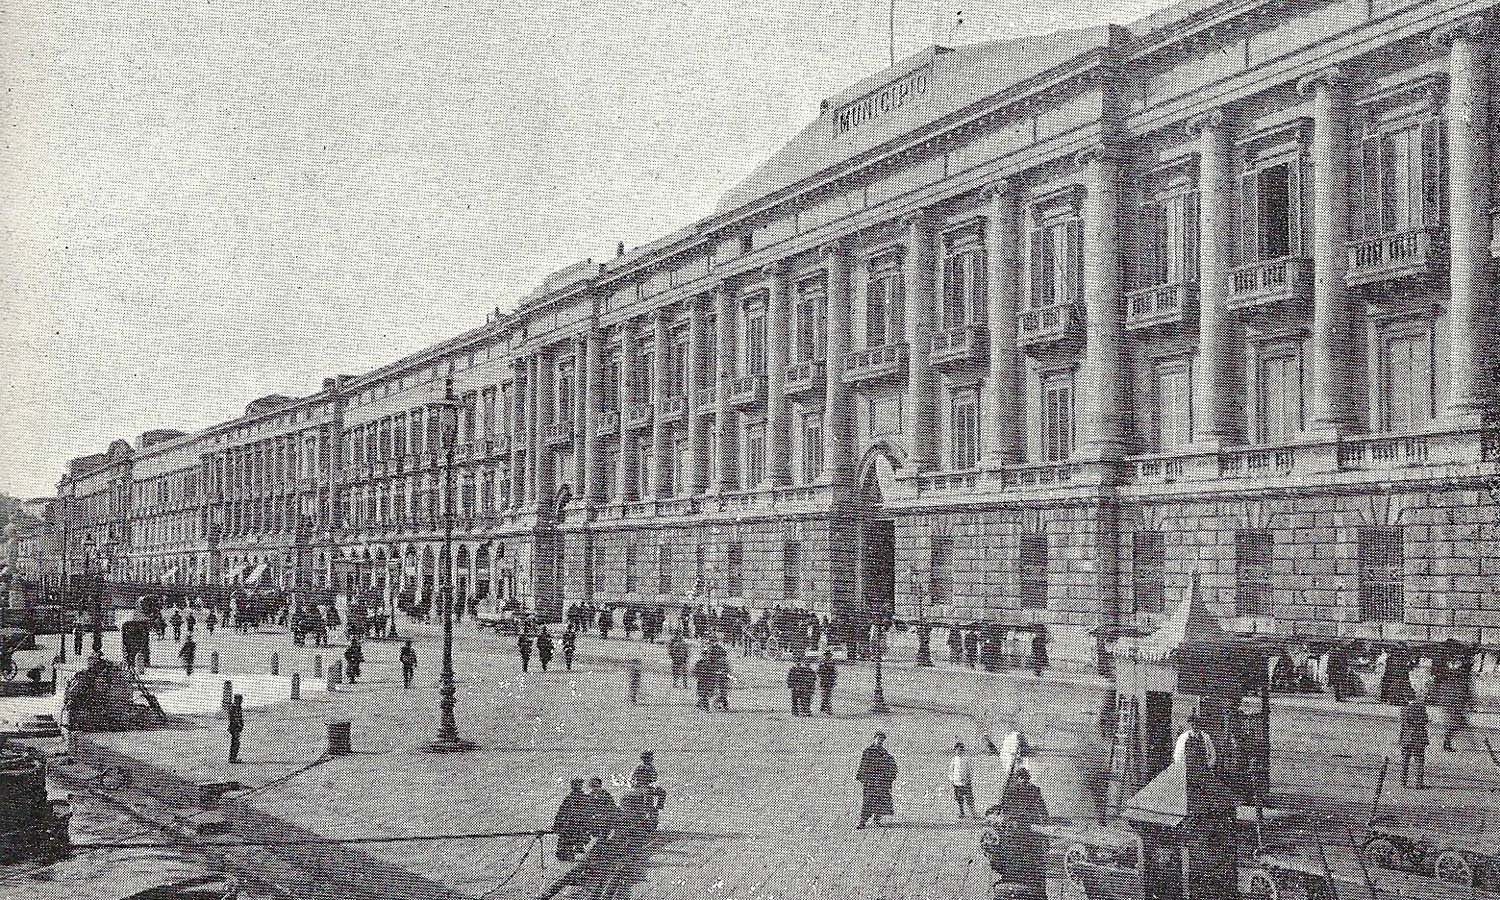 Messina's waterfront, the Palazzata, in the 19th century.